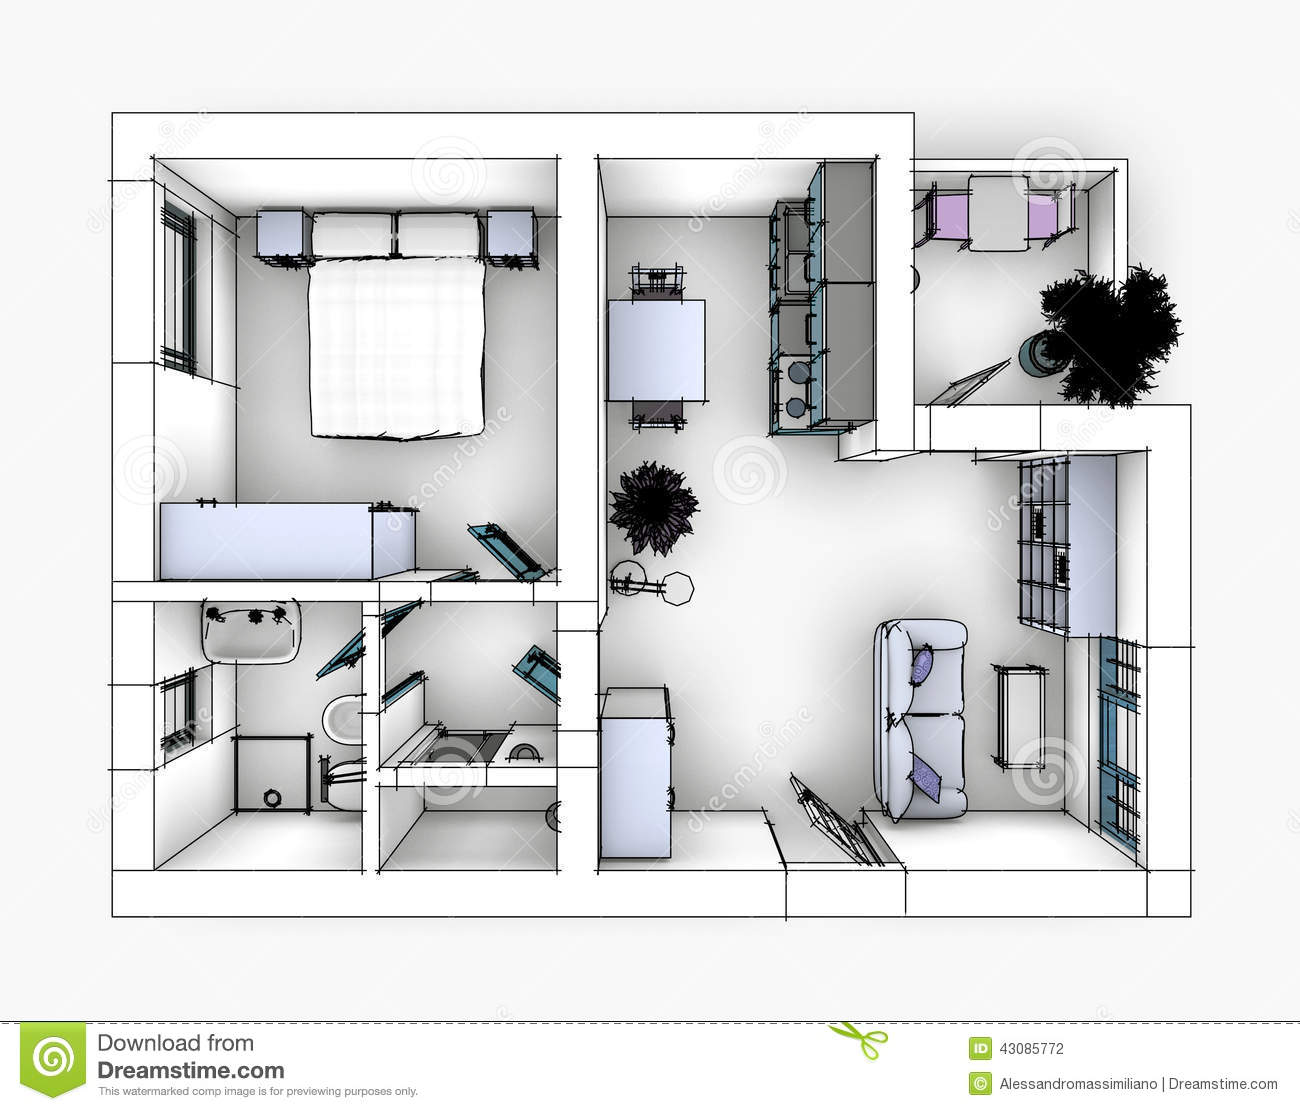 Appartement De Dessin Illustration Stock Image 43085772